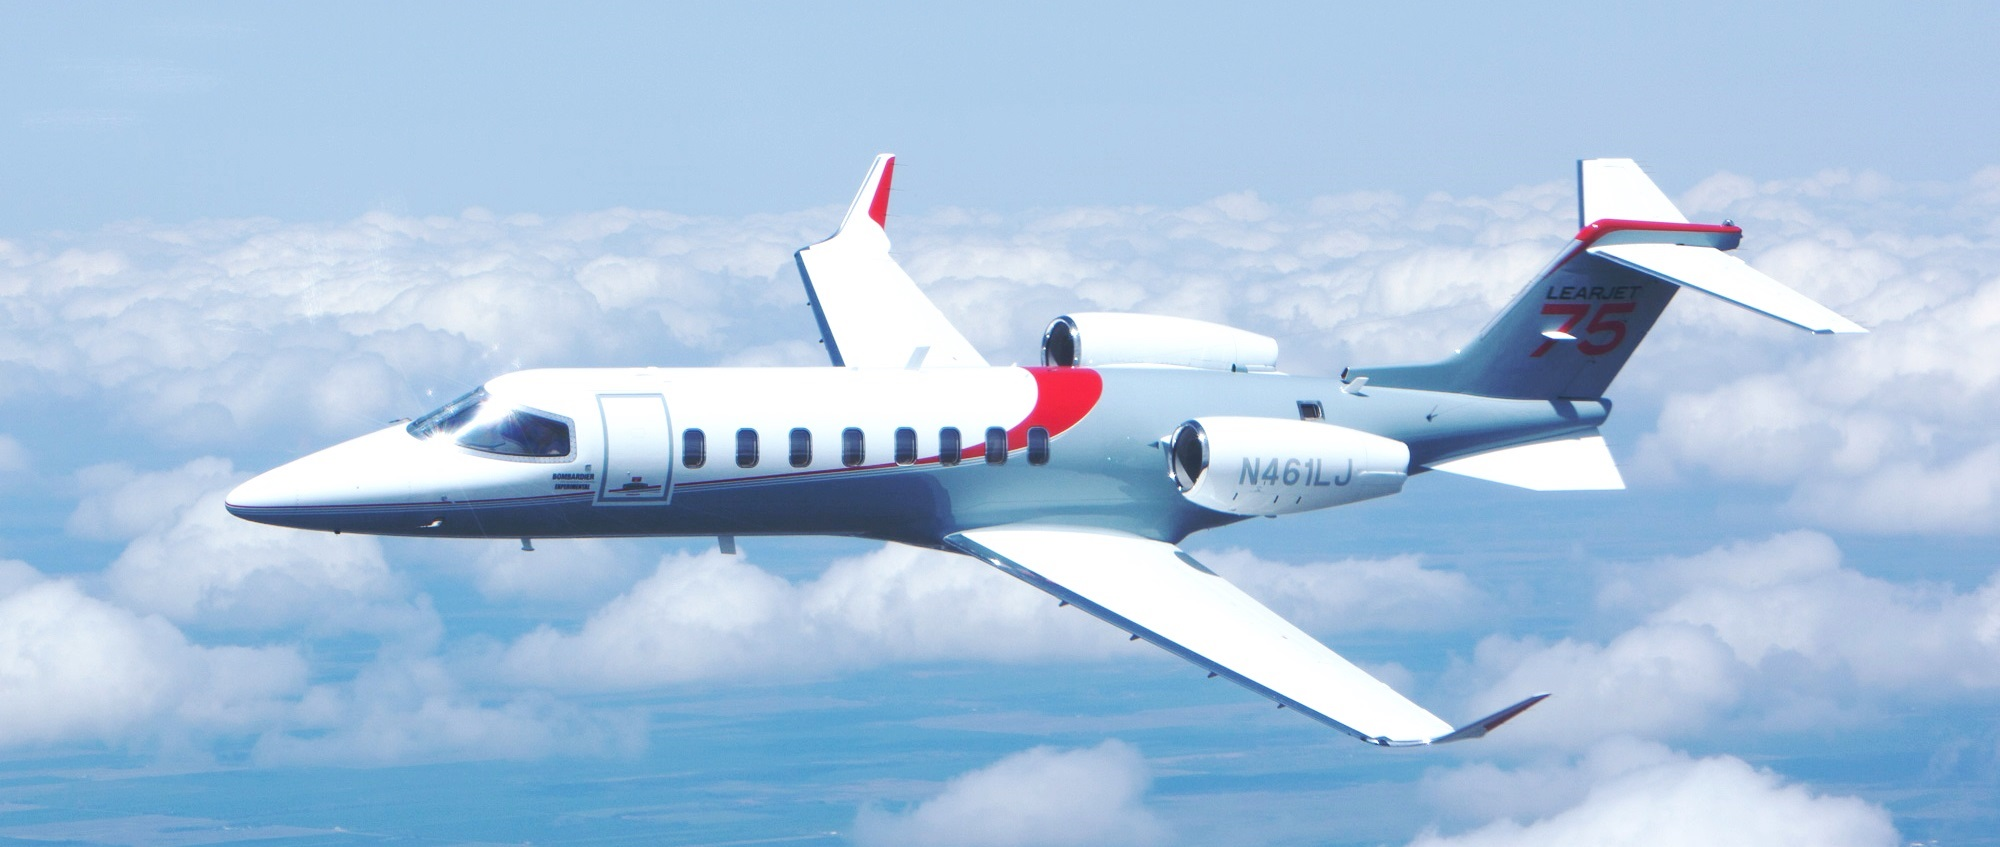 bombardier-learjet-75-business-jet-aircraft